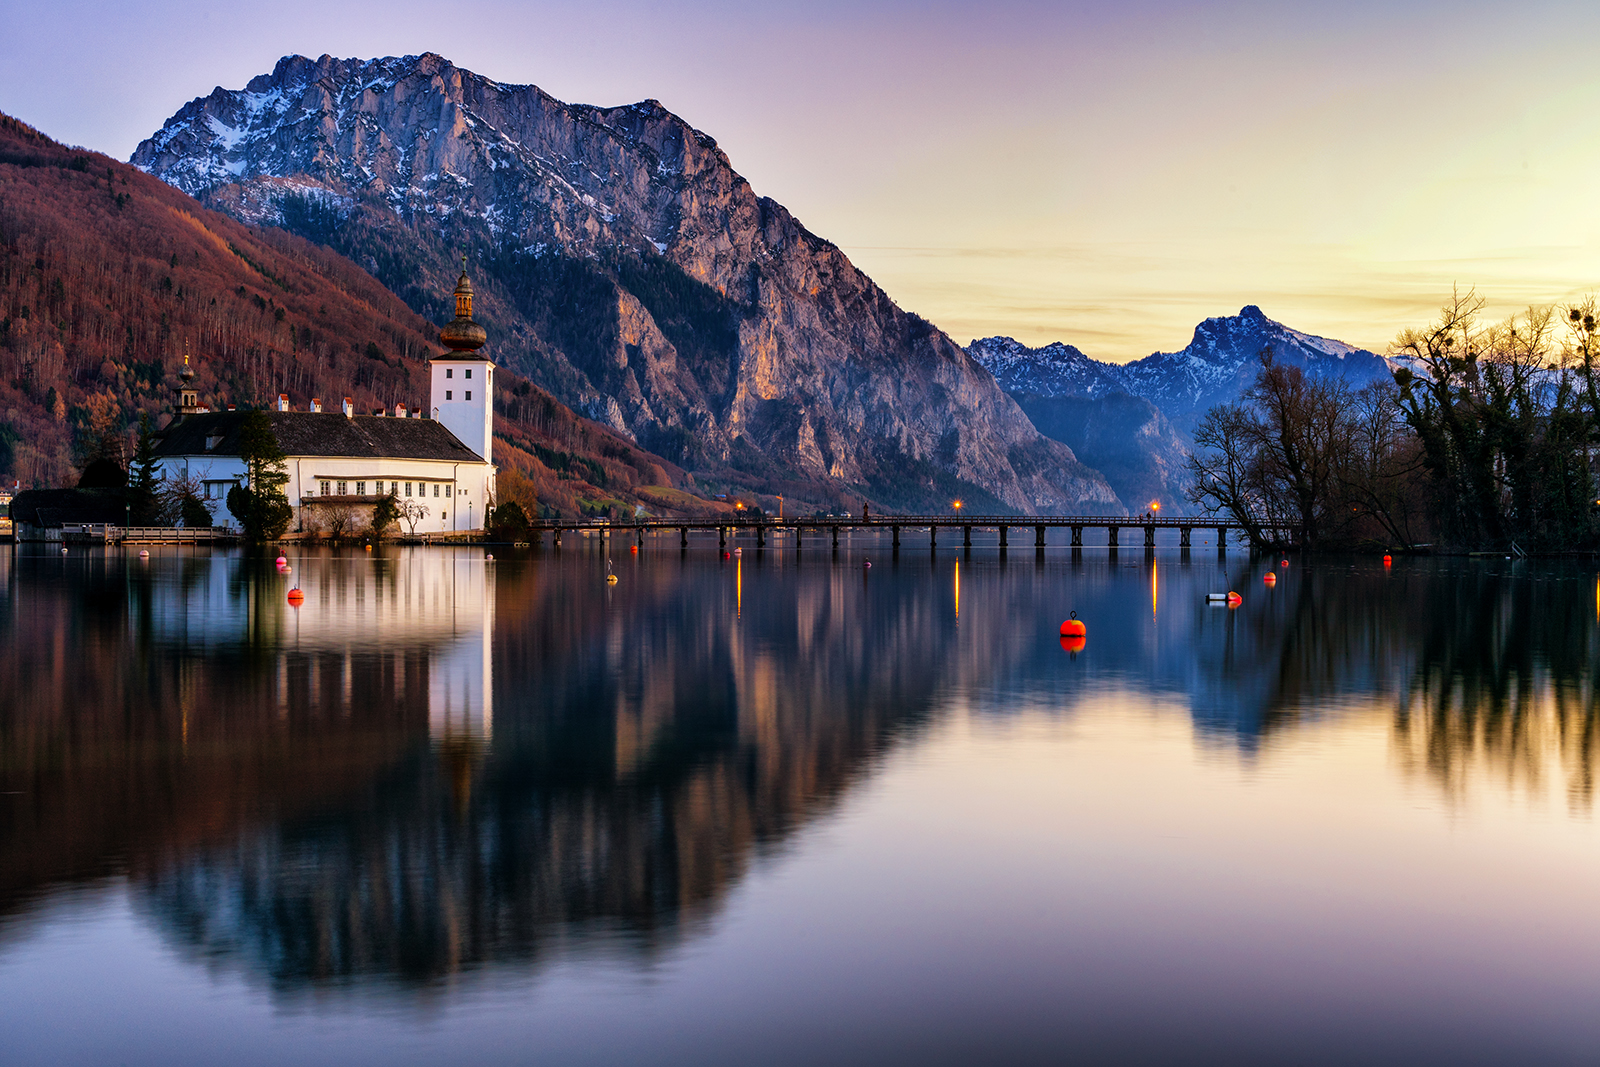 traunsee, austria, reflection, water, mountains, sony, sony a7ii, sony 24-70, sunset, snow